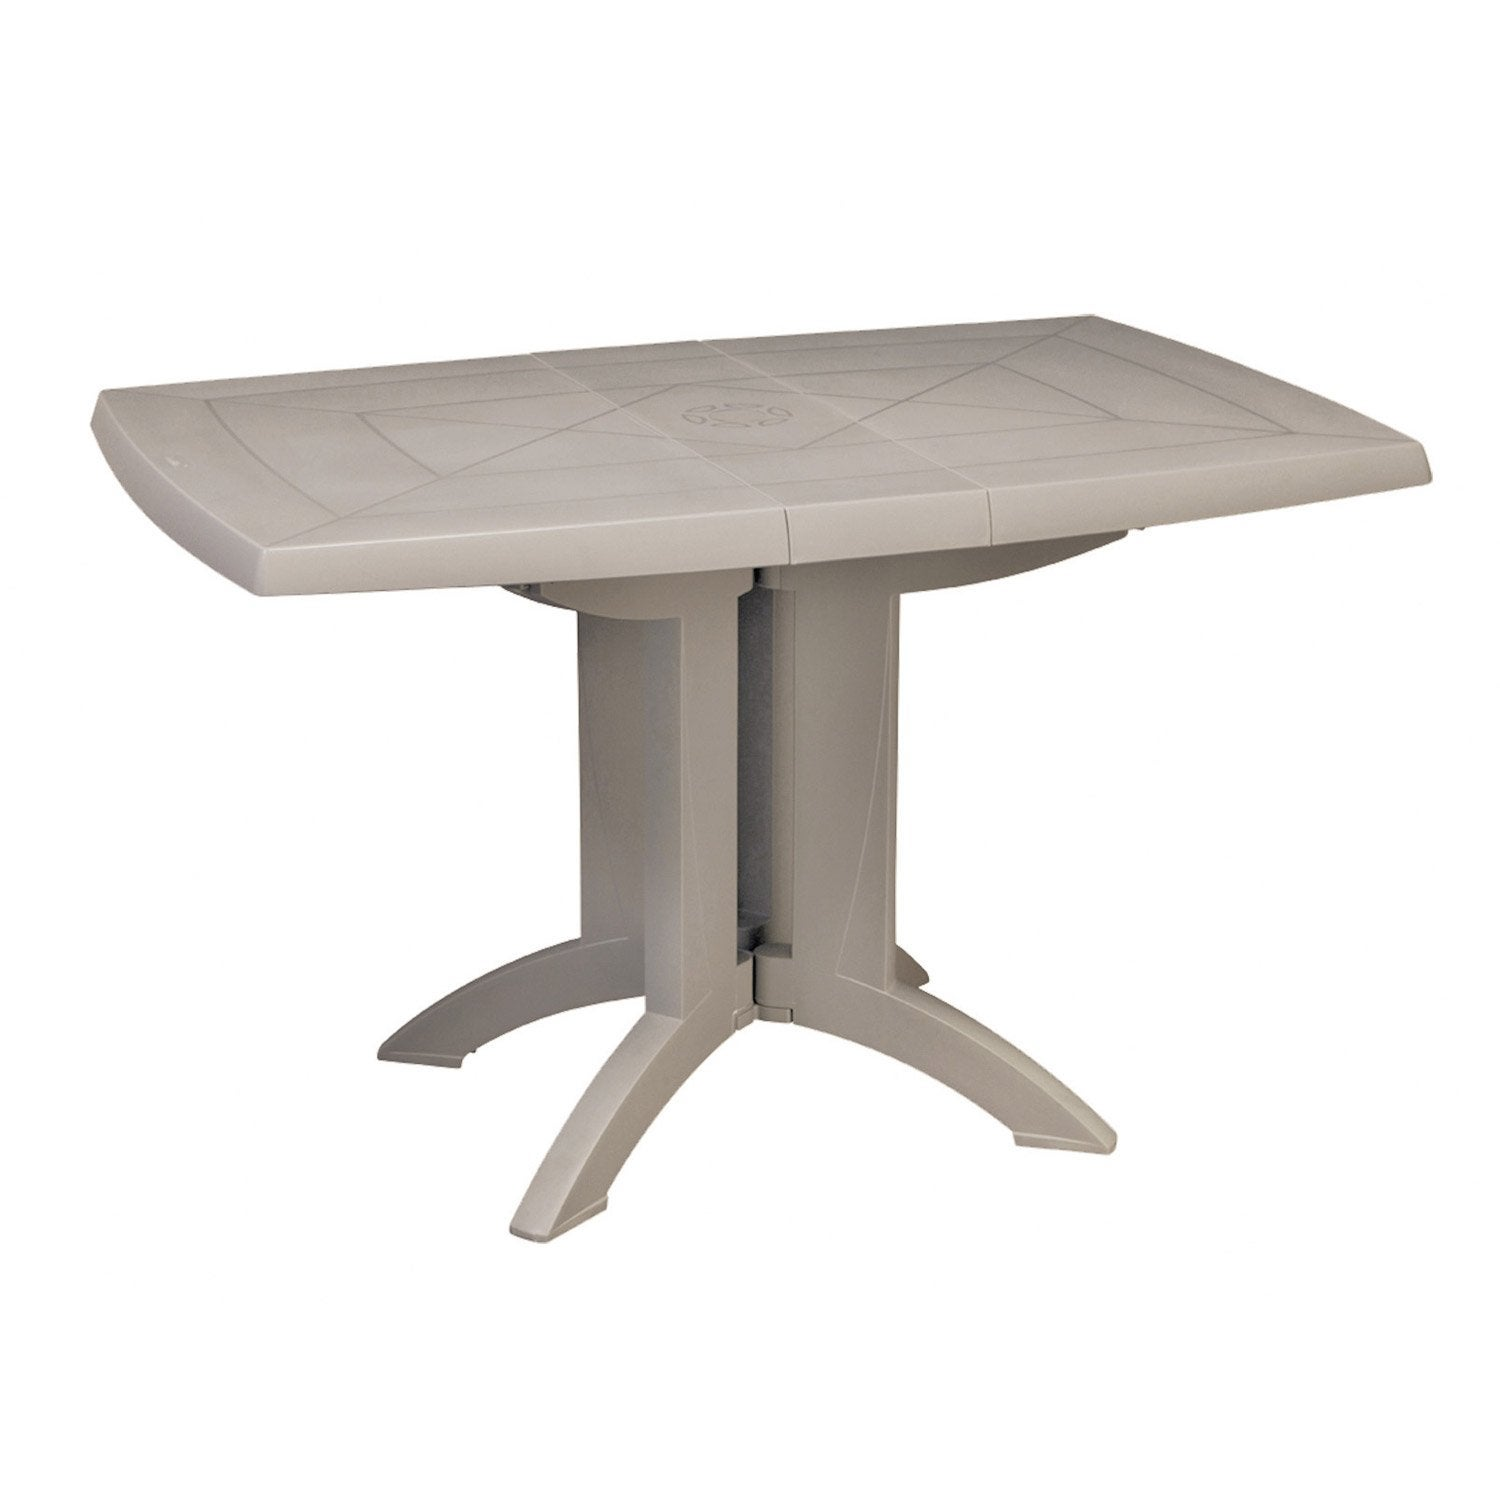 Table Jardin 4 Personnes Maison Design